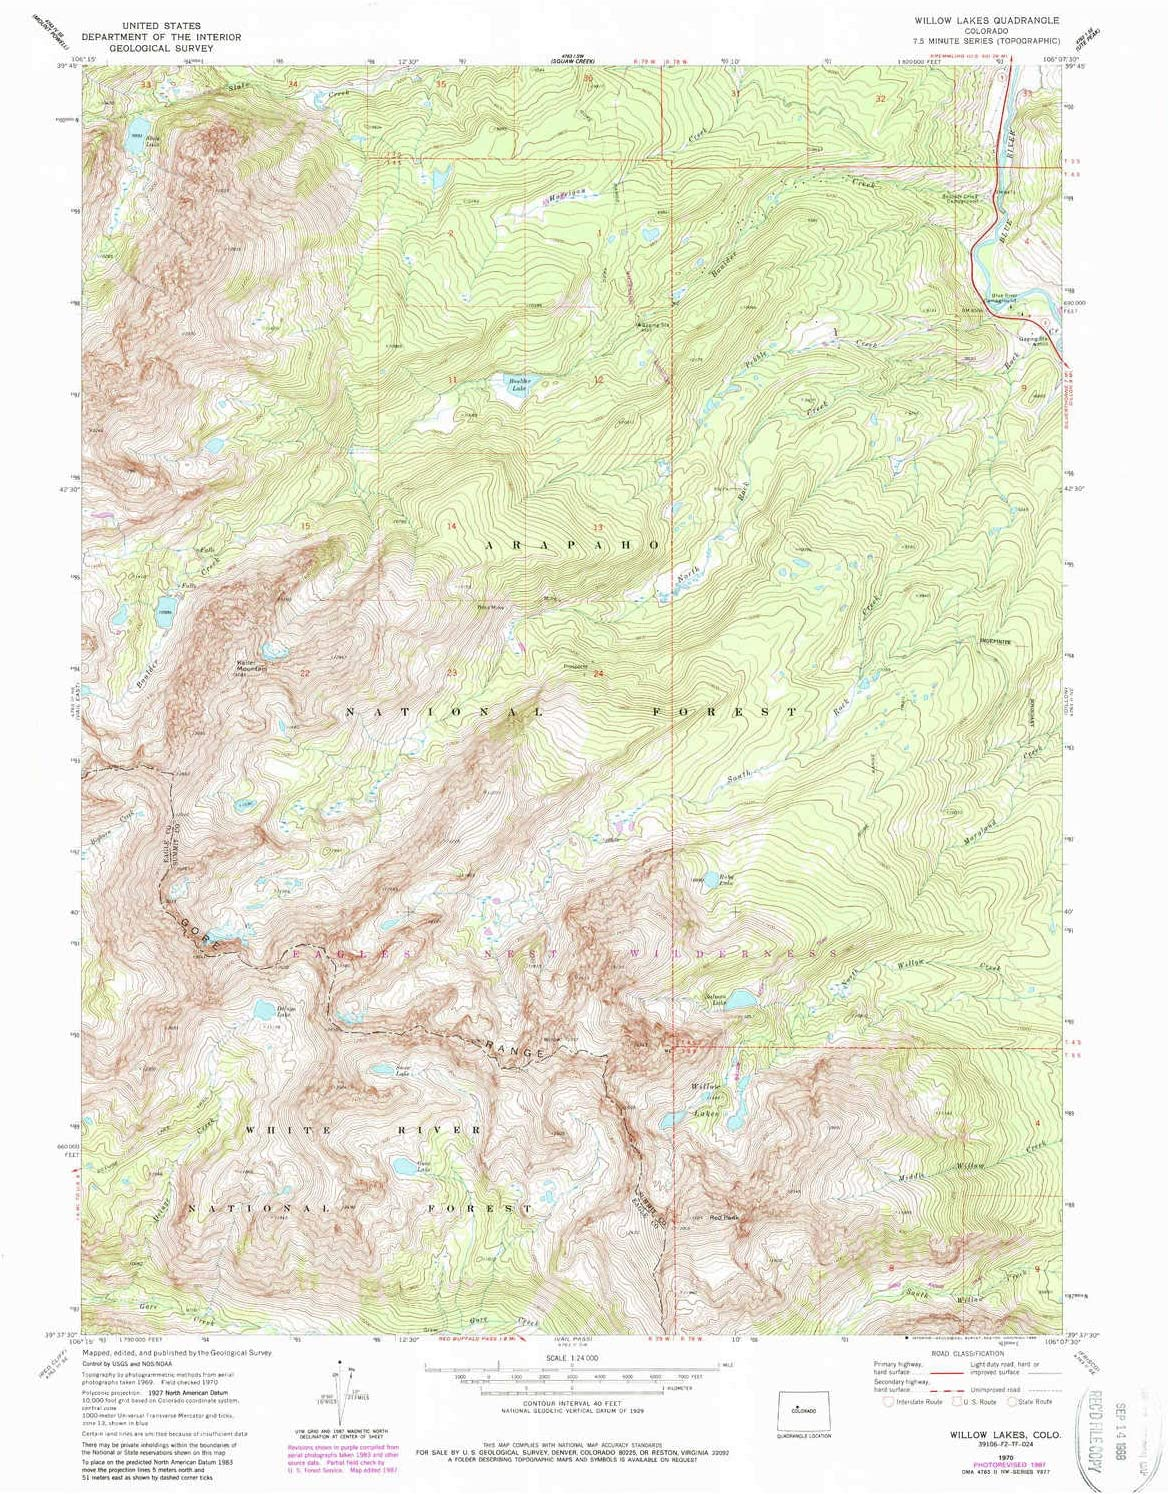 service free shipping Willow Lakes CO topo map 1:24000 Minute 7.5 X Scale Histo